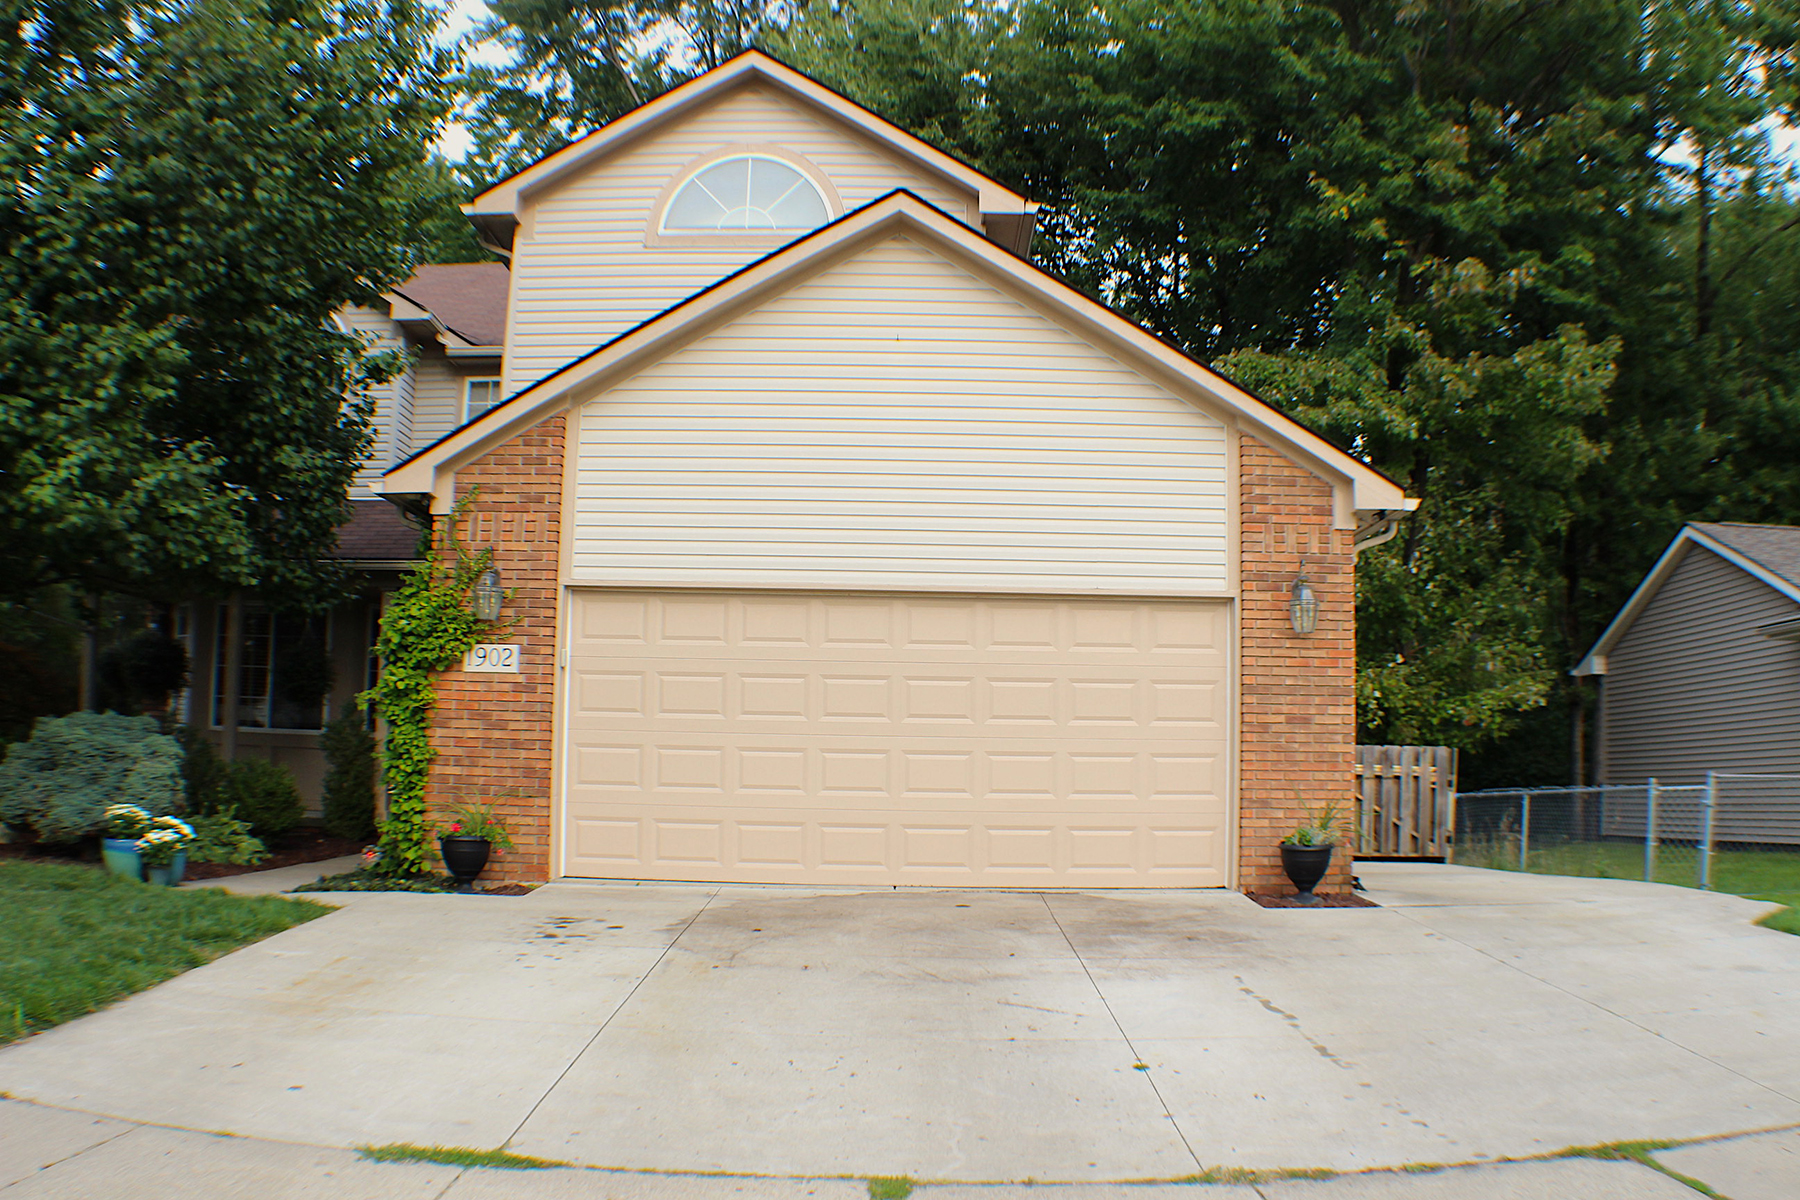 Single Family Homes for Sale at Troy 1902 Hartshorn Avenue Troy, Michigan 48083 United States